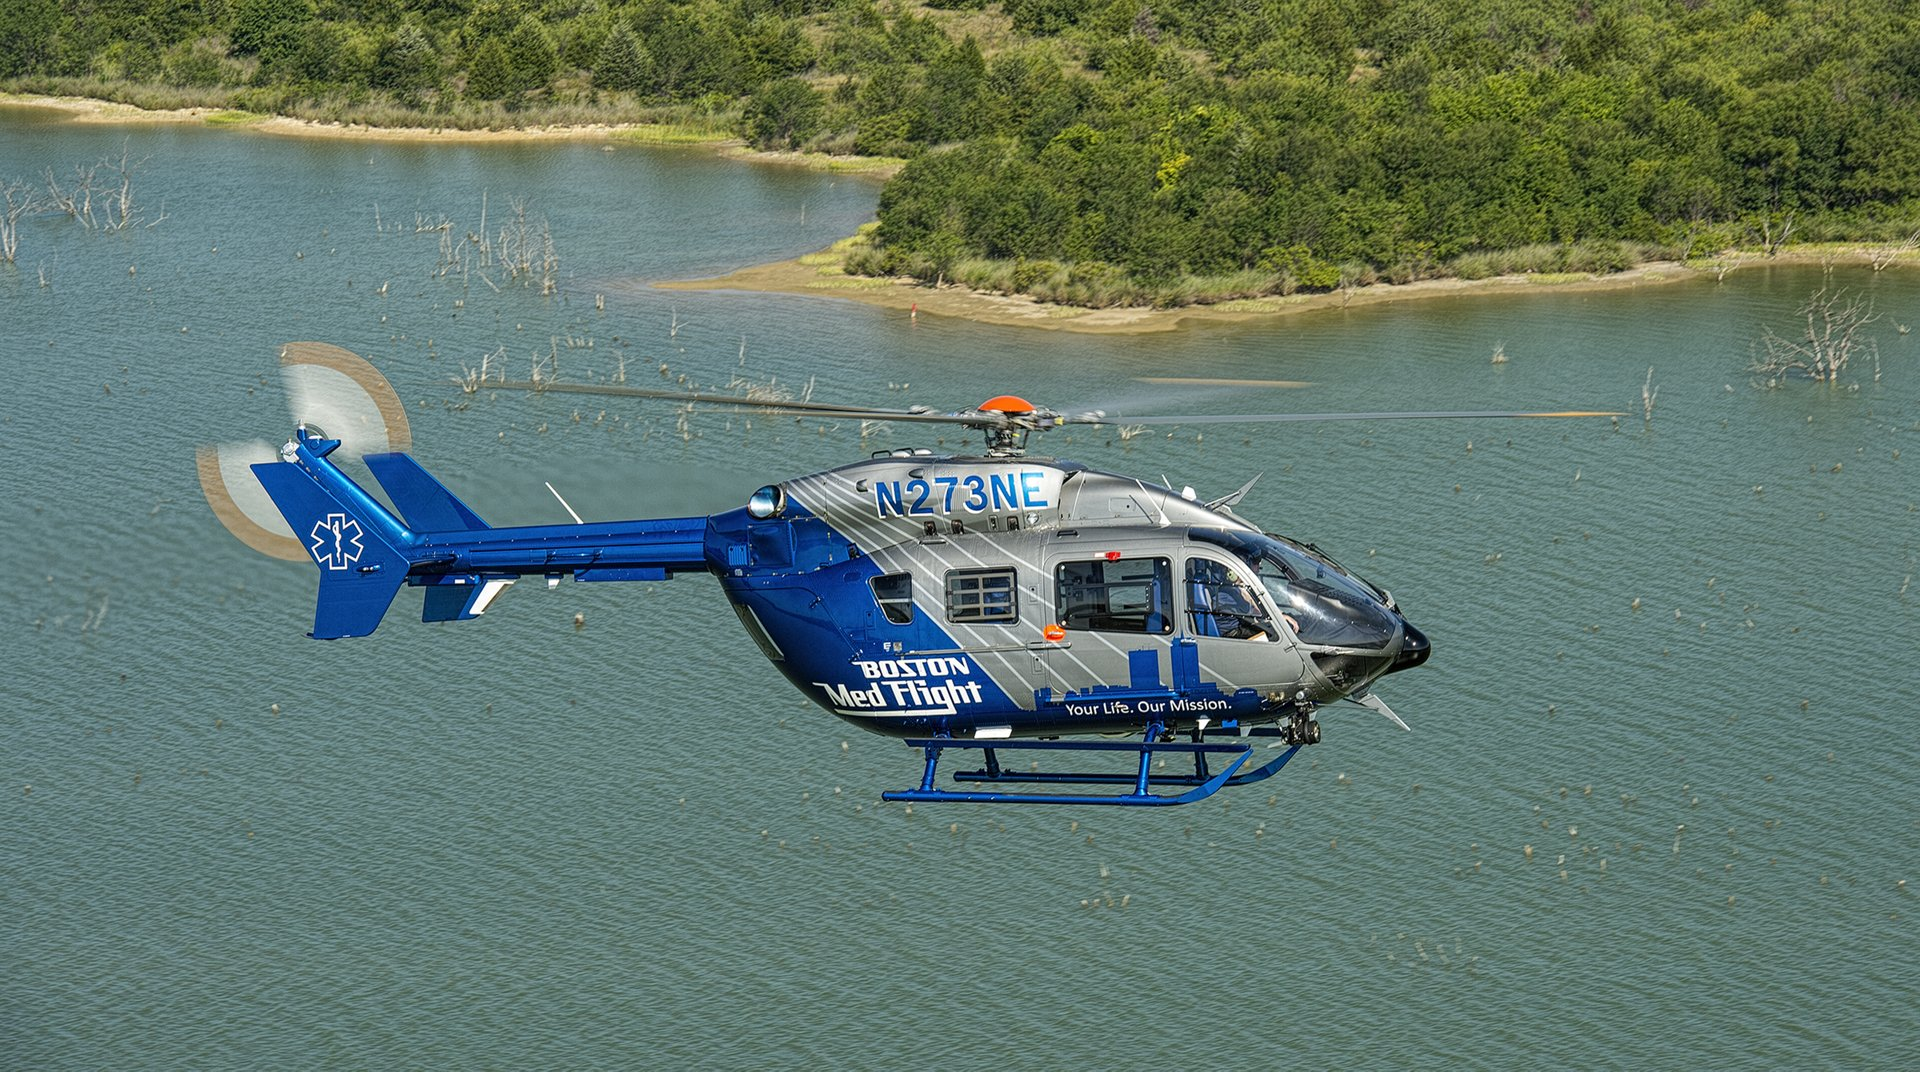 Boston MedFlight, a nonprofit organization that provides